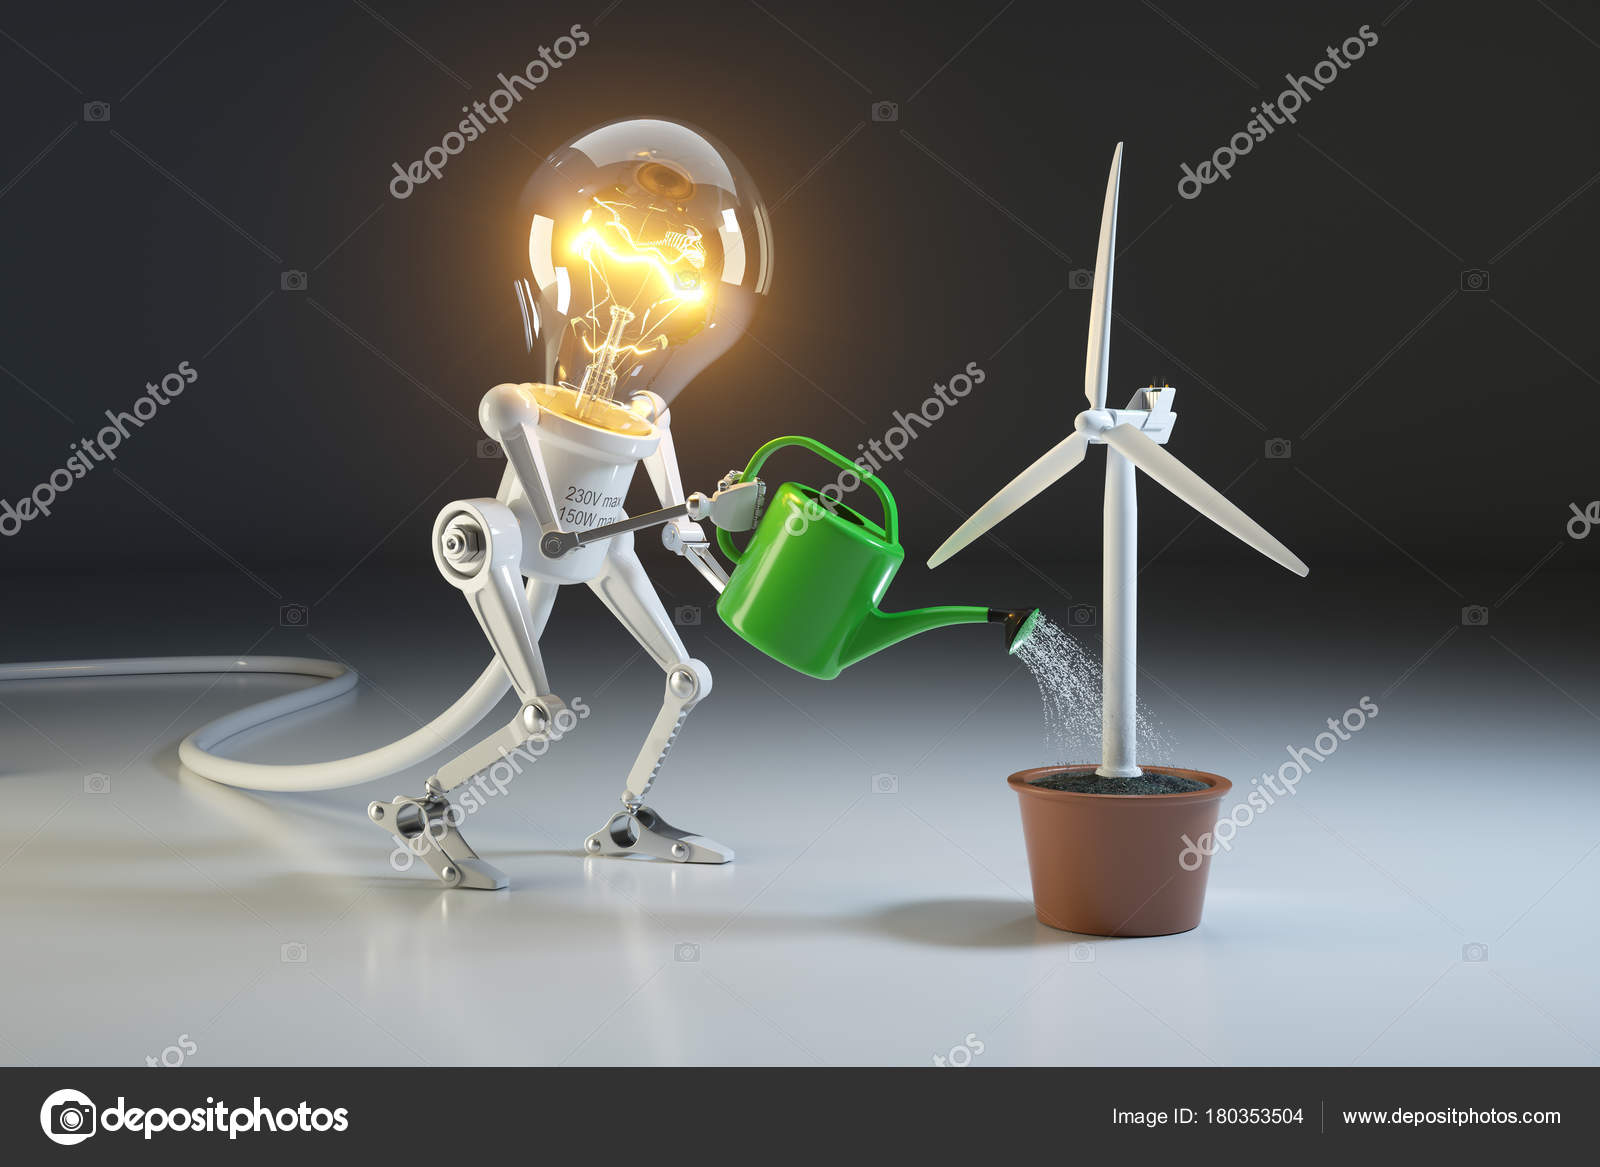 Robot lamp watering wind generator in a pot  The concept of